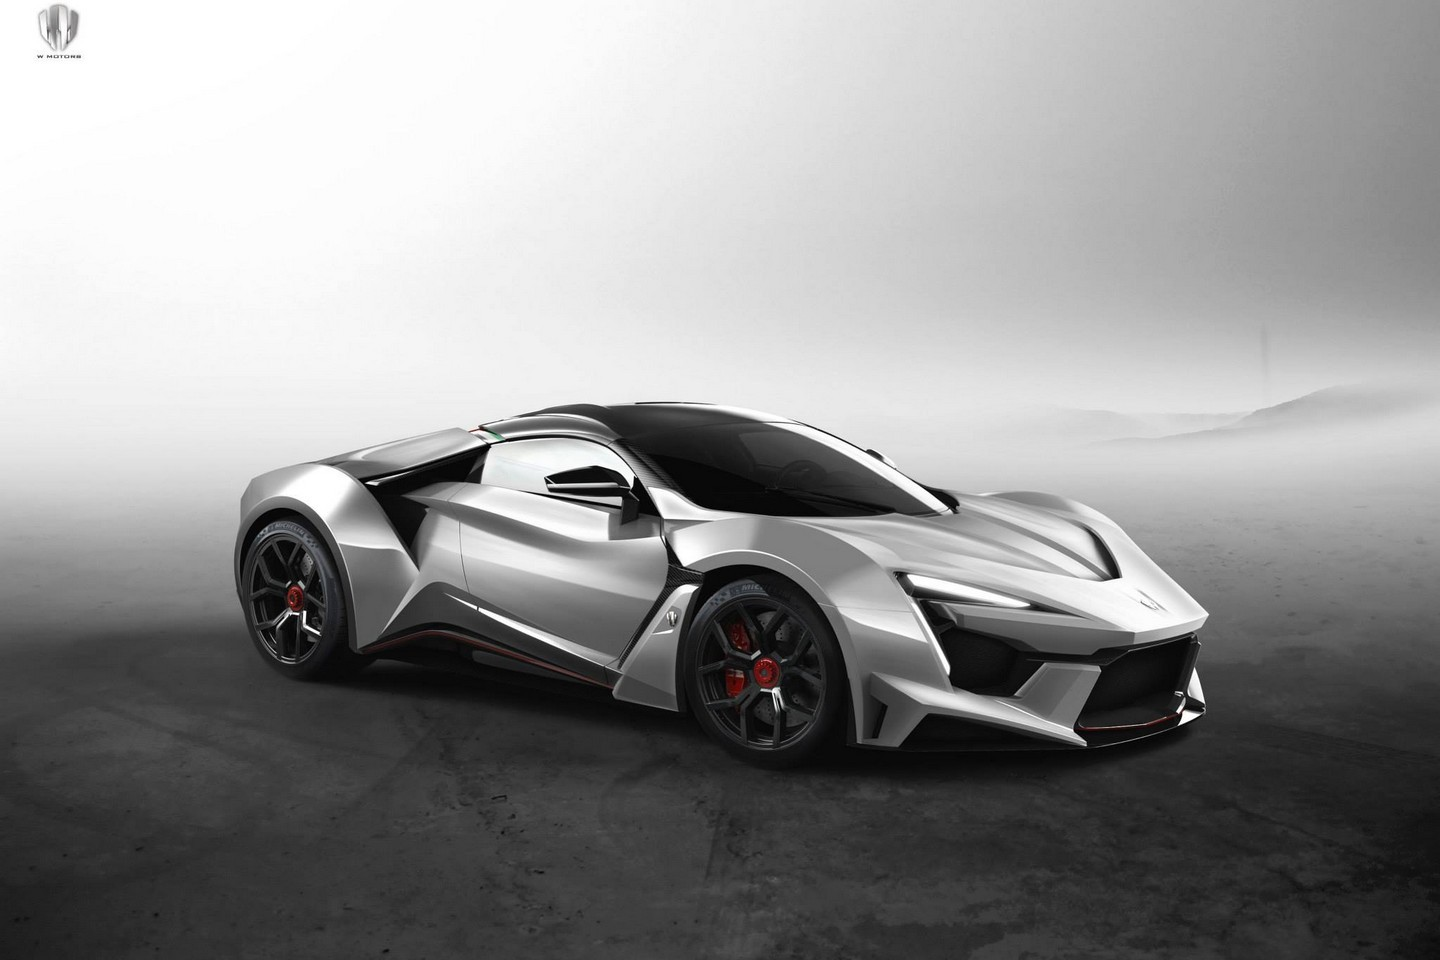 W Motors Fenyr >> W Motors Fenyr SuperSport Is the Middle East's Idea of a Hypercar - autoevolution